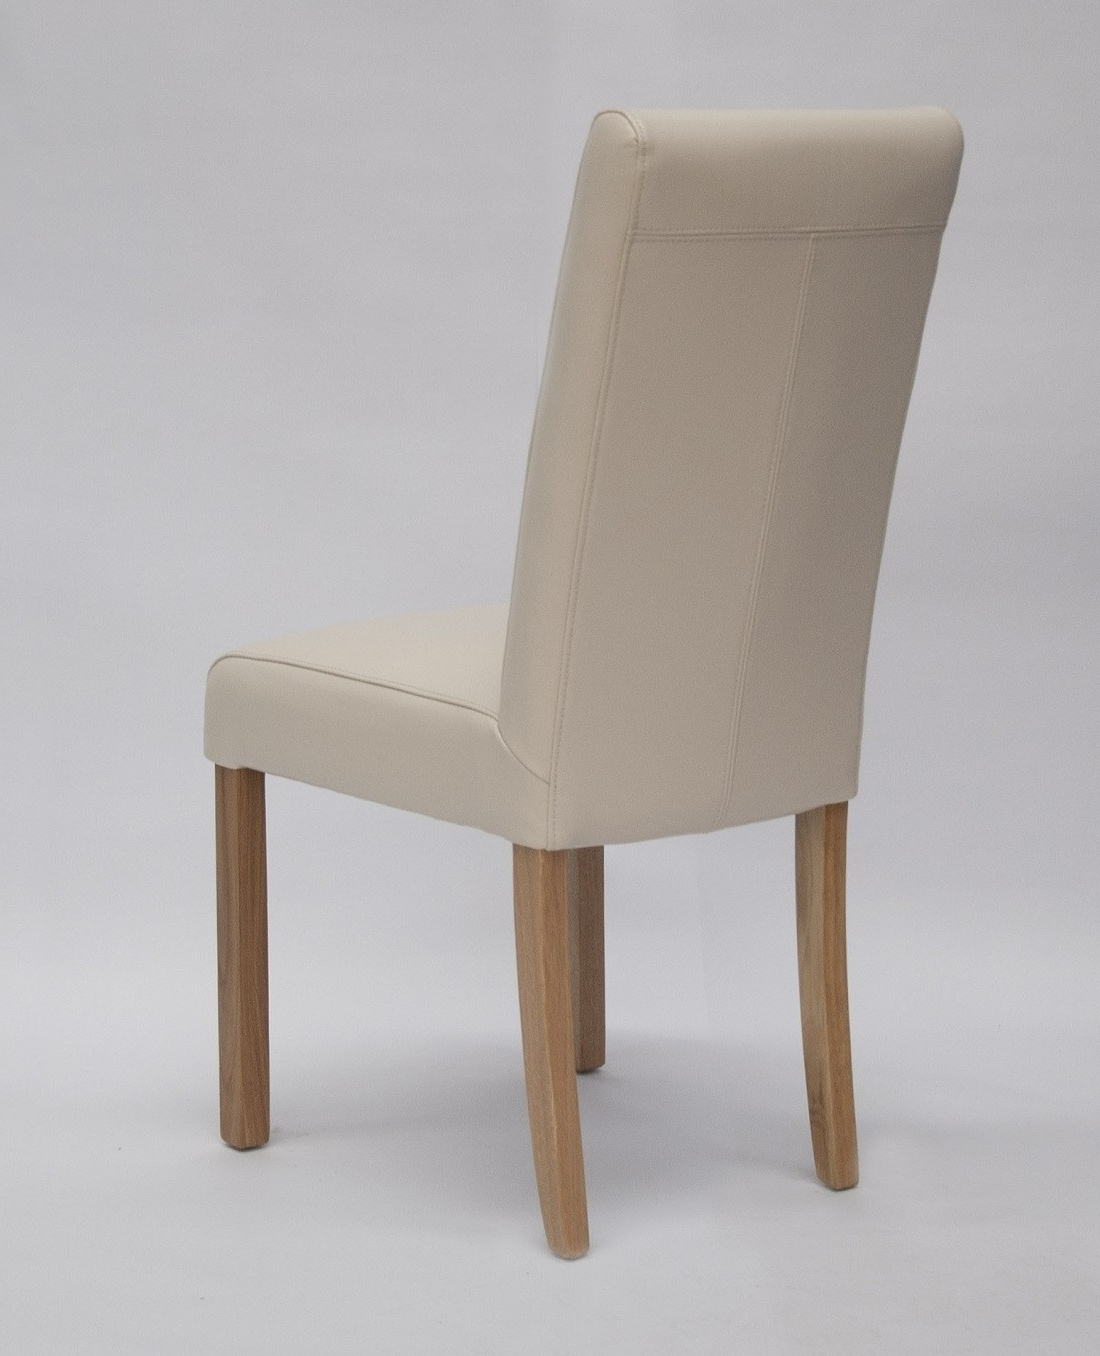 Marianna Cream Leather Dining Chair With Solid Oak Legs For Well Known Cream Leather Dining Chairs (View 19 of 25)